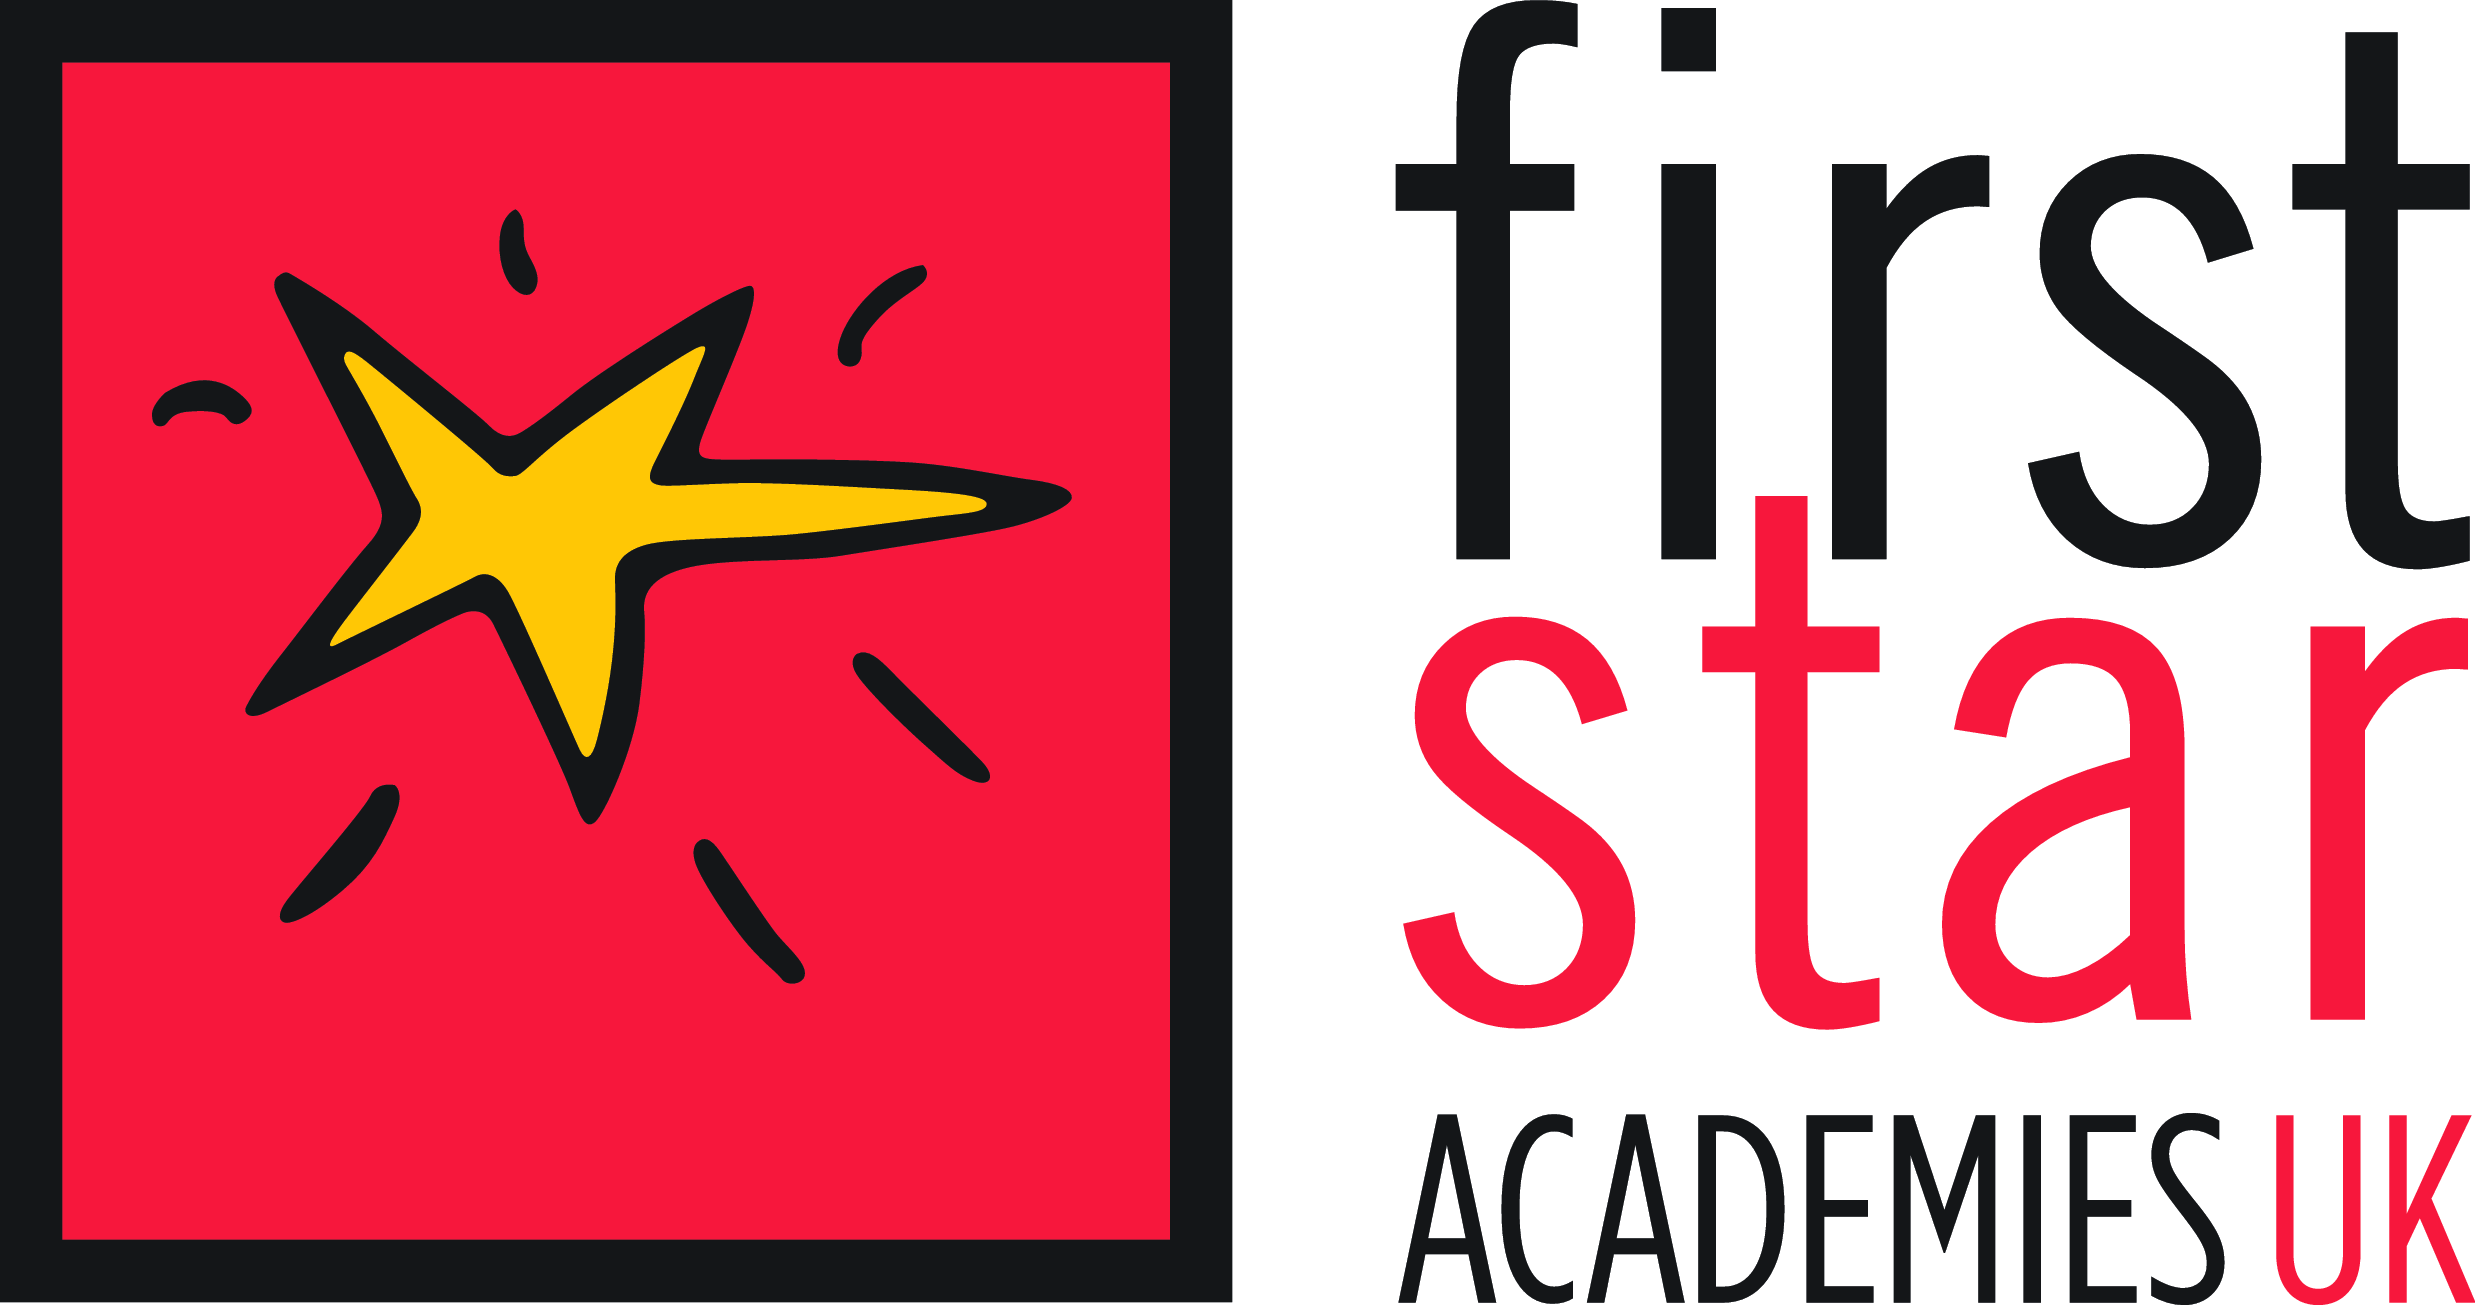 First Star Academies.png